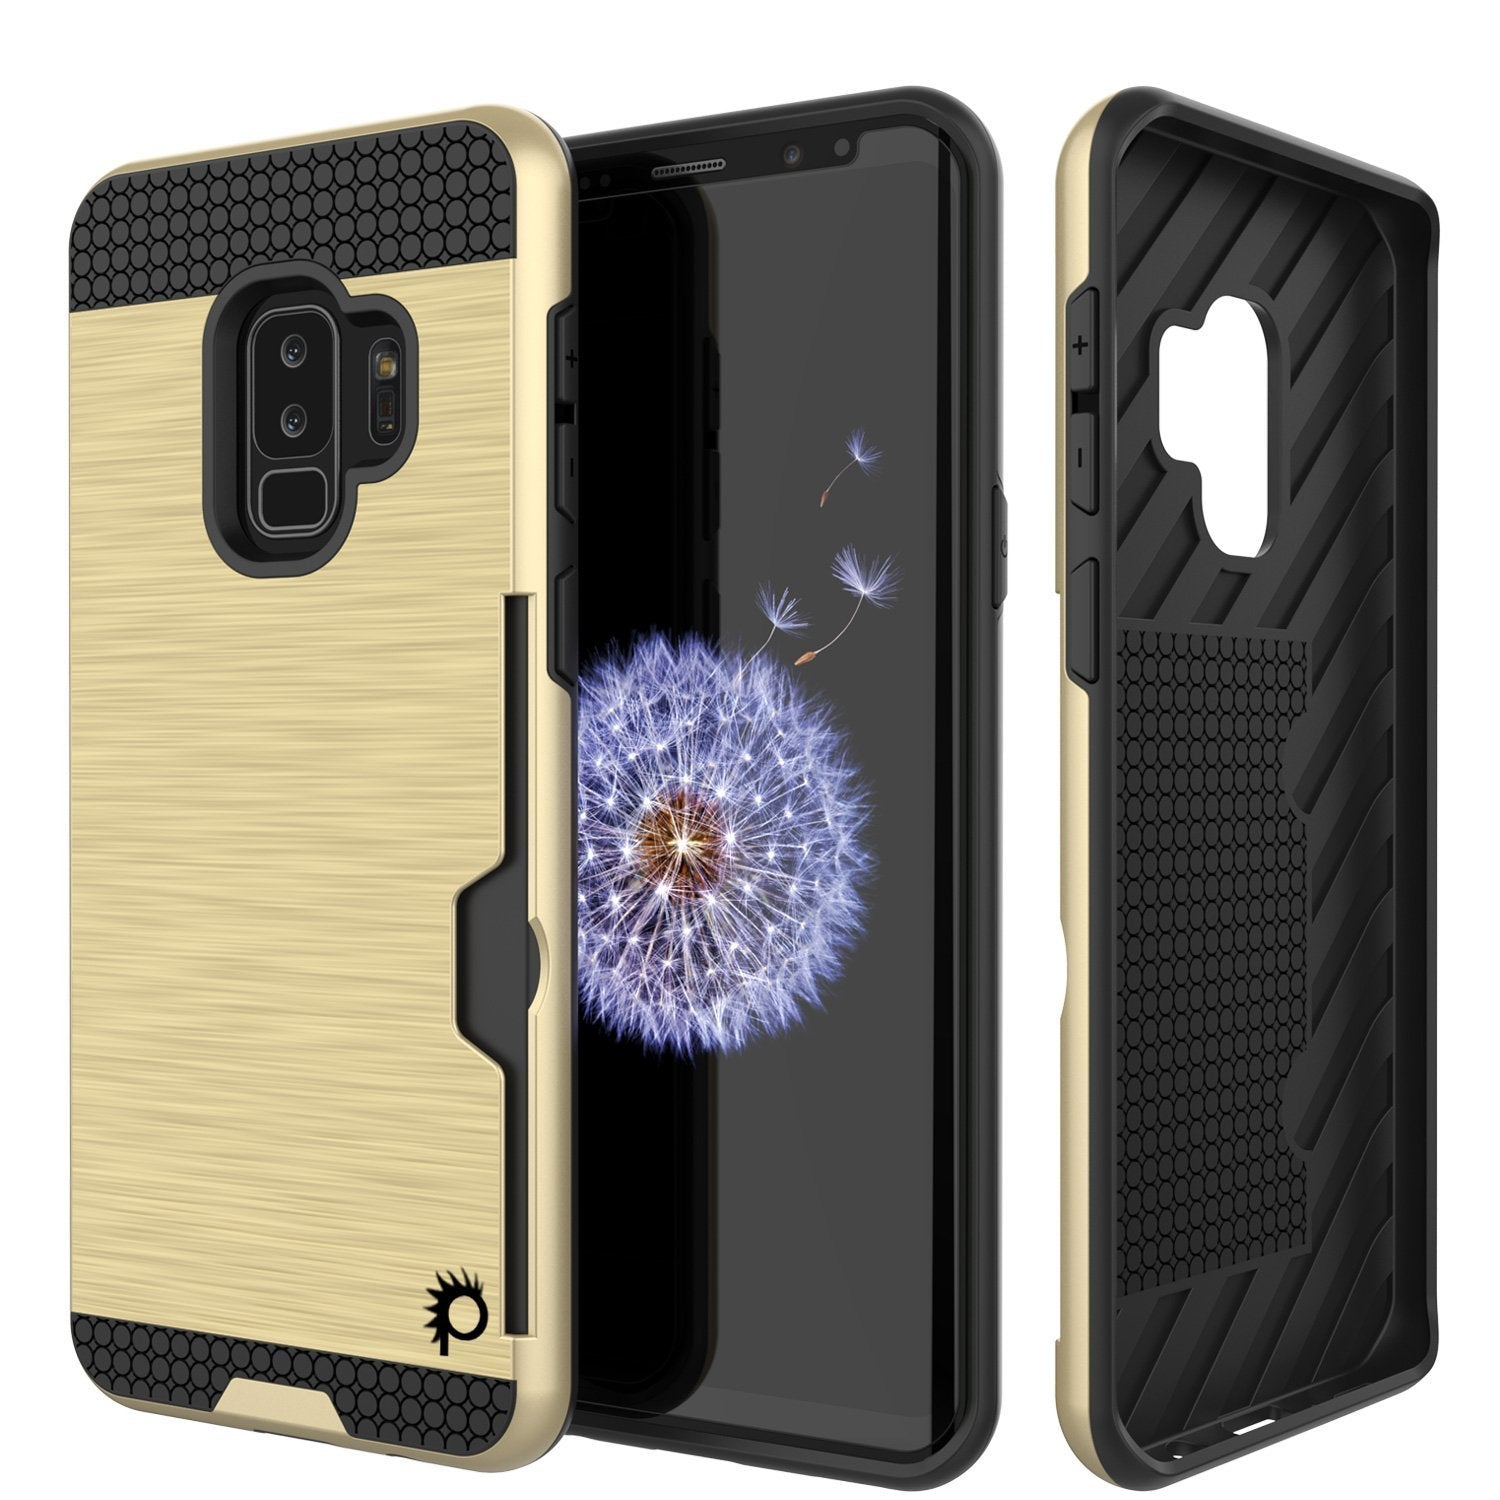 Galaxy S9 Plus Punkcase SLOT Series w/Integrated Anti-Shock, Gold